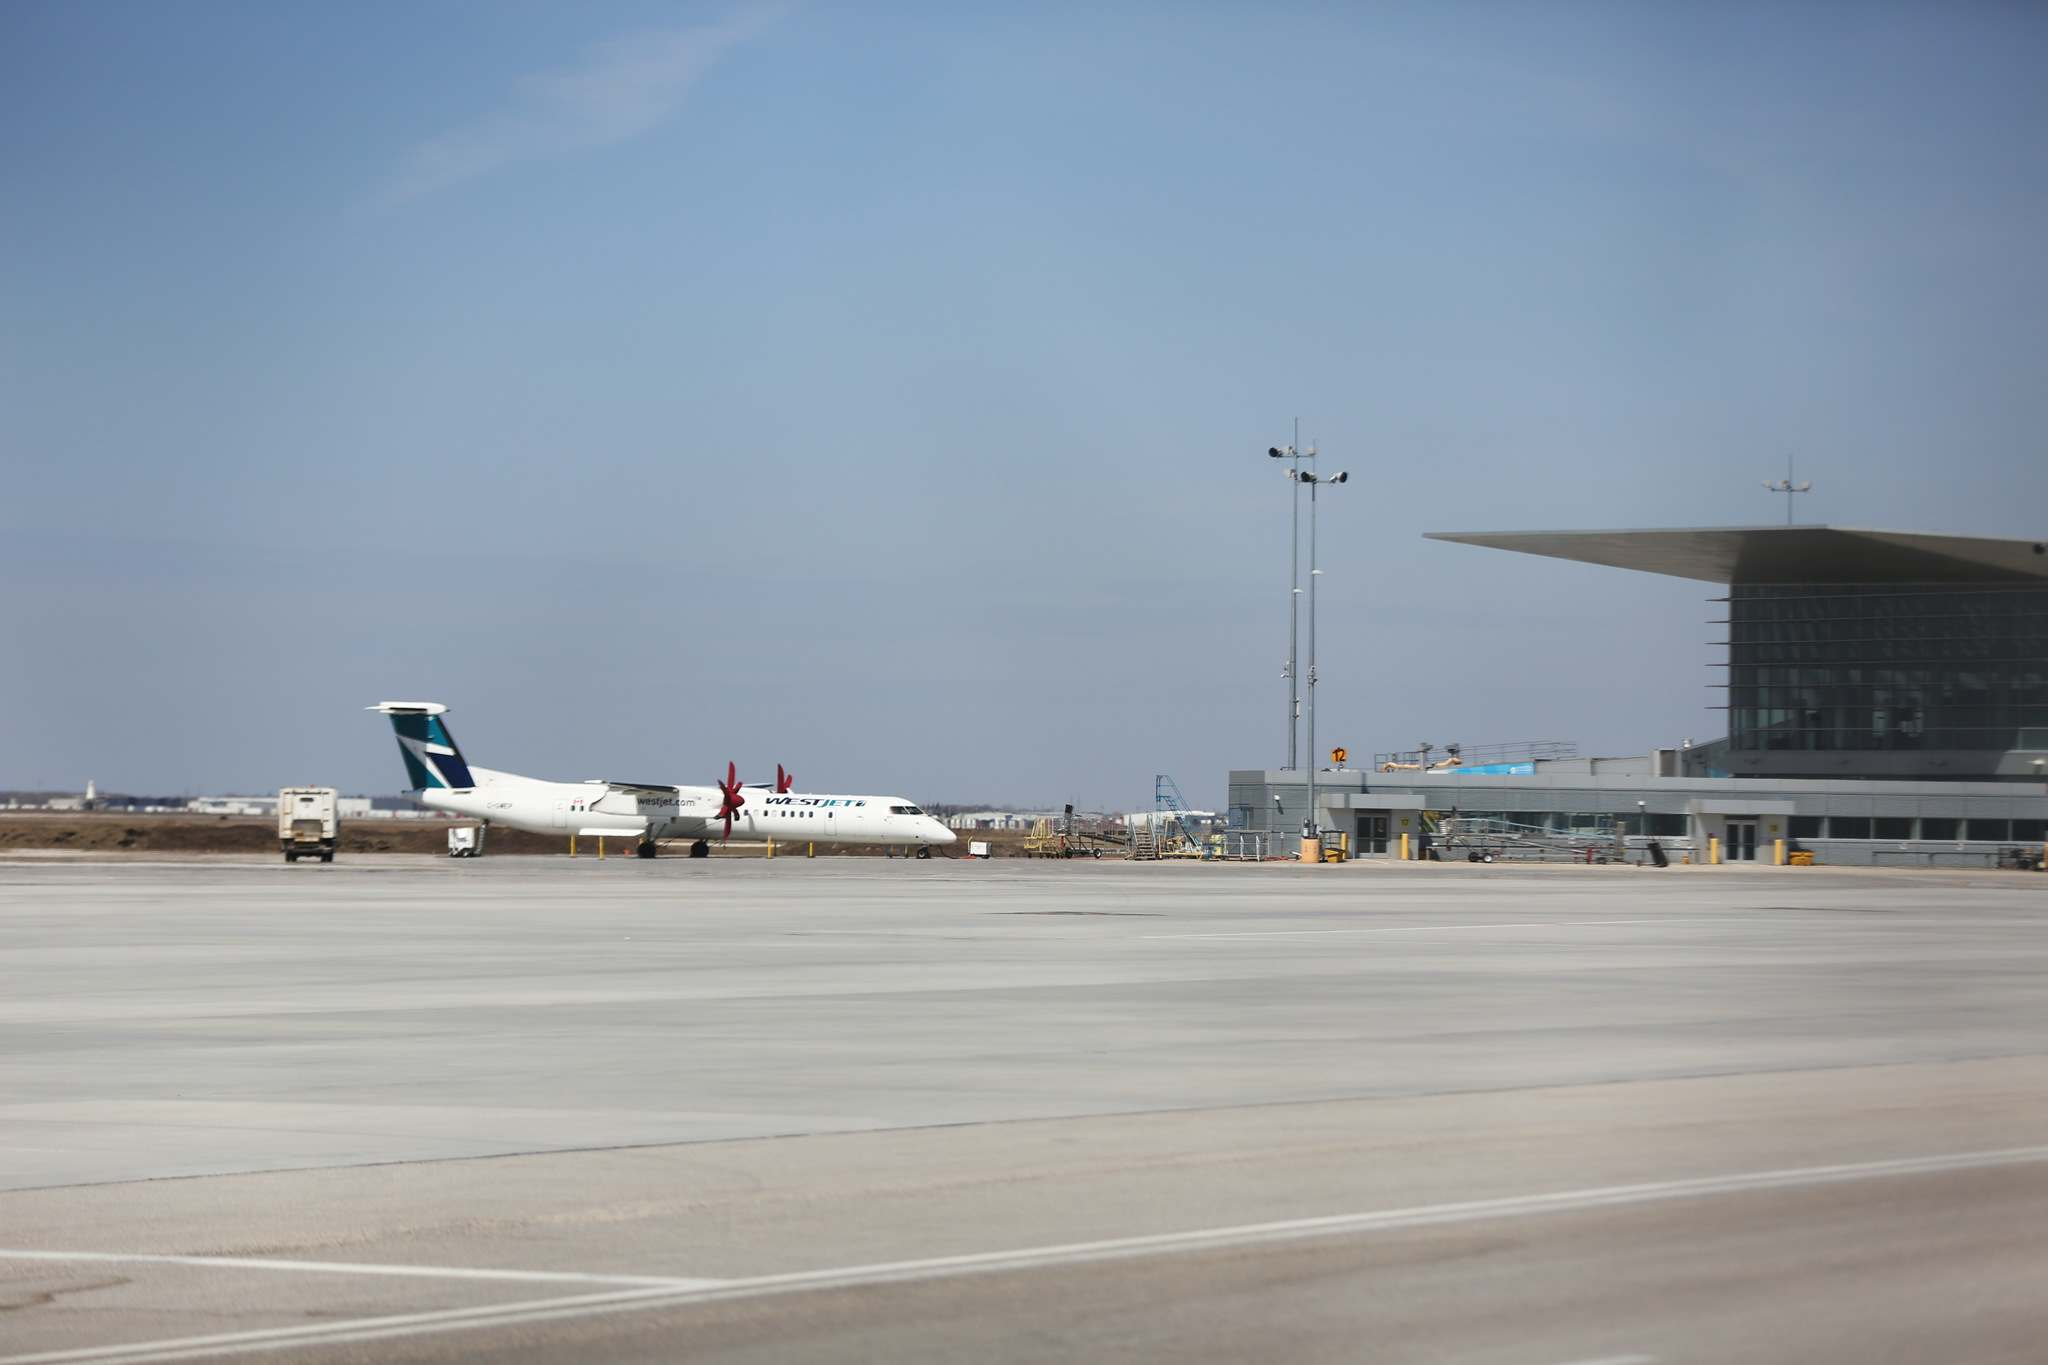 Richardson International is Canada's seventh busiest airport by passenger count, the country's top dedicated freighter airport by number of flights and third highest in daily air cargo tonnage. The air cargo business is now one of the strategic elements of the city's economic development strategy. (Mike Deal / Winnipeg Free Press files)